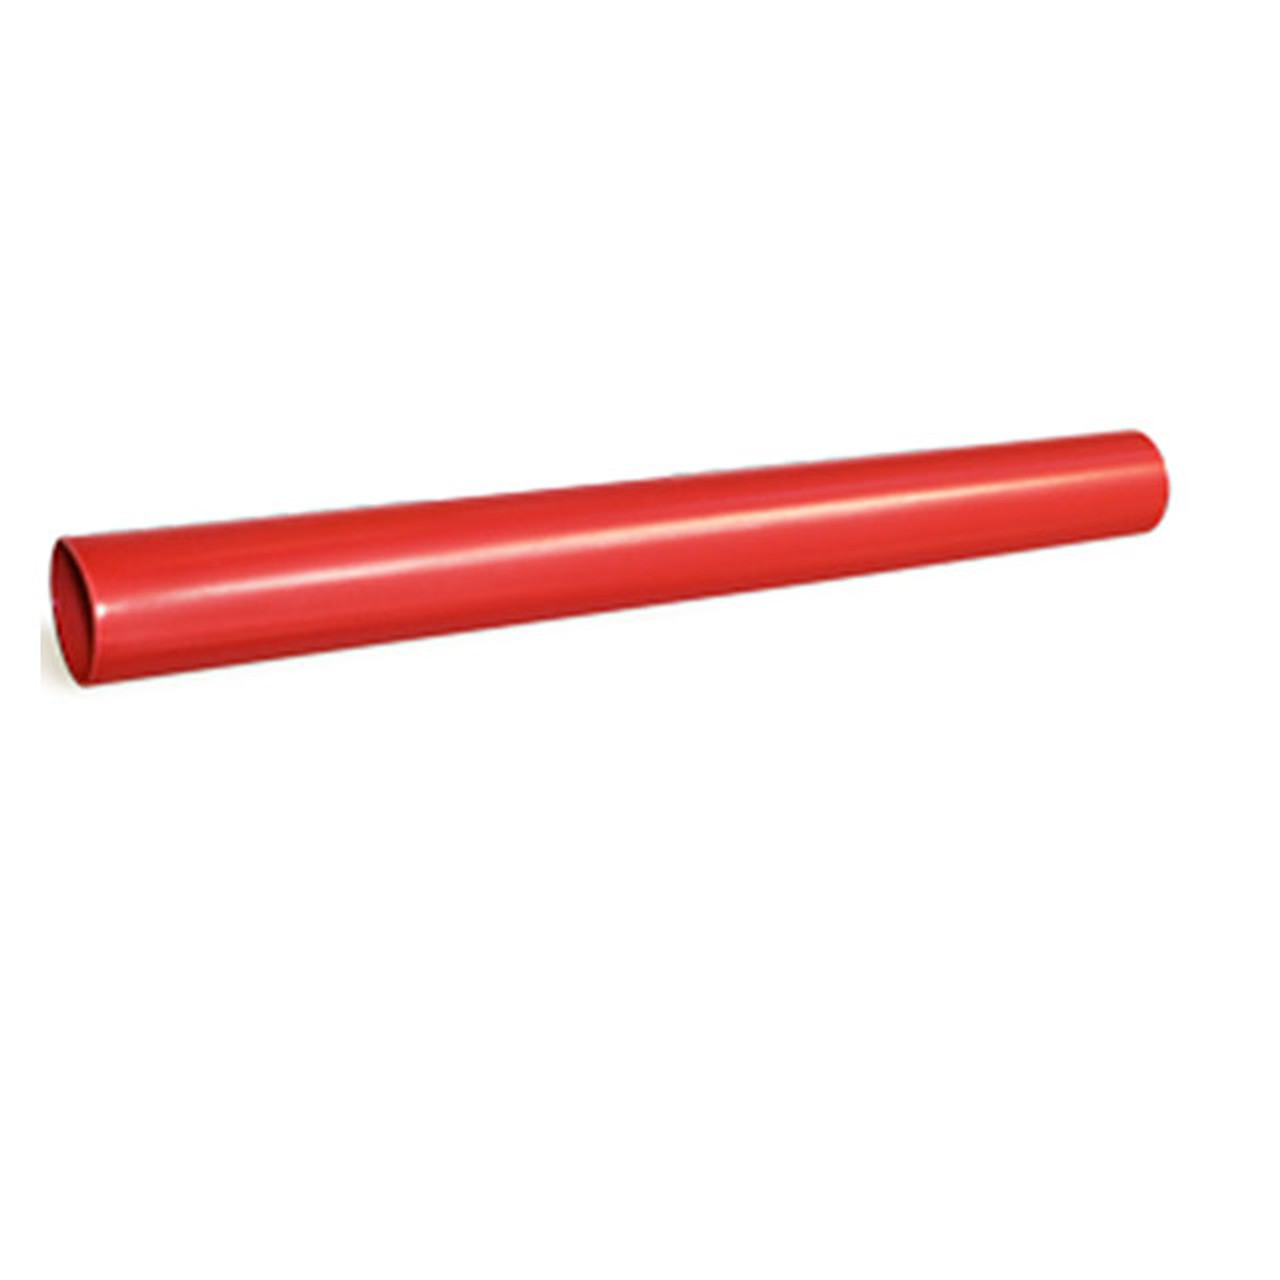 "HEAT SHRINK 3/4"" RED 1' ADHESIVE LINED DUAL WALL"